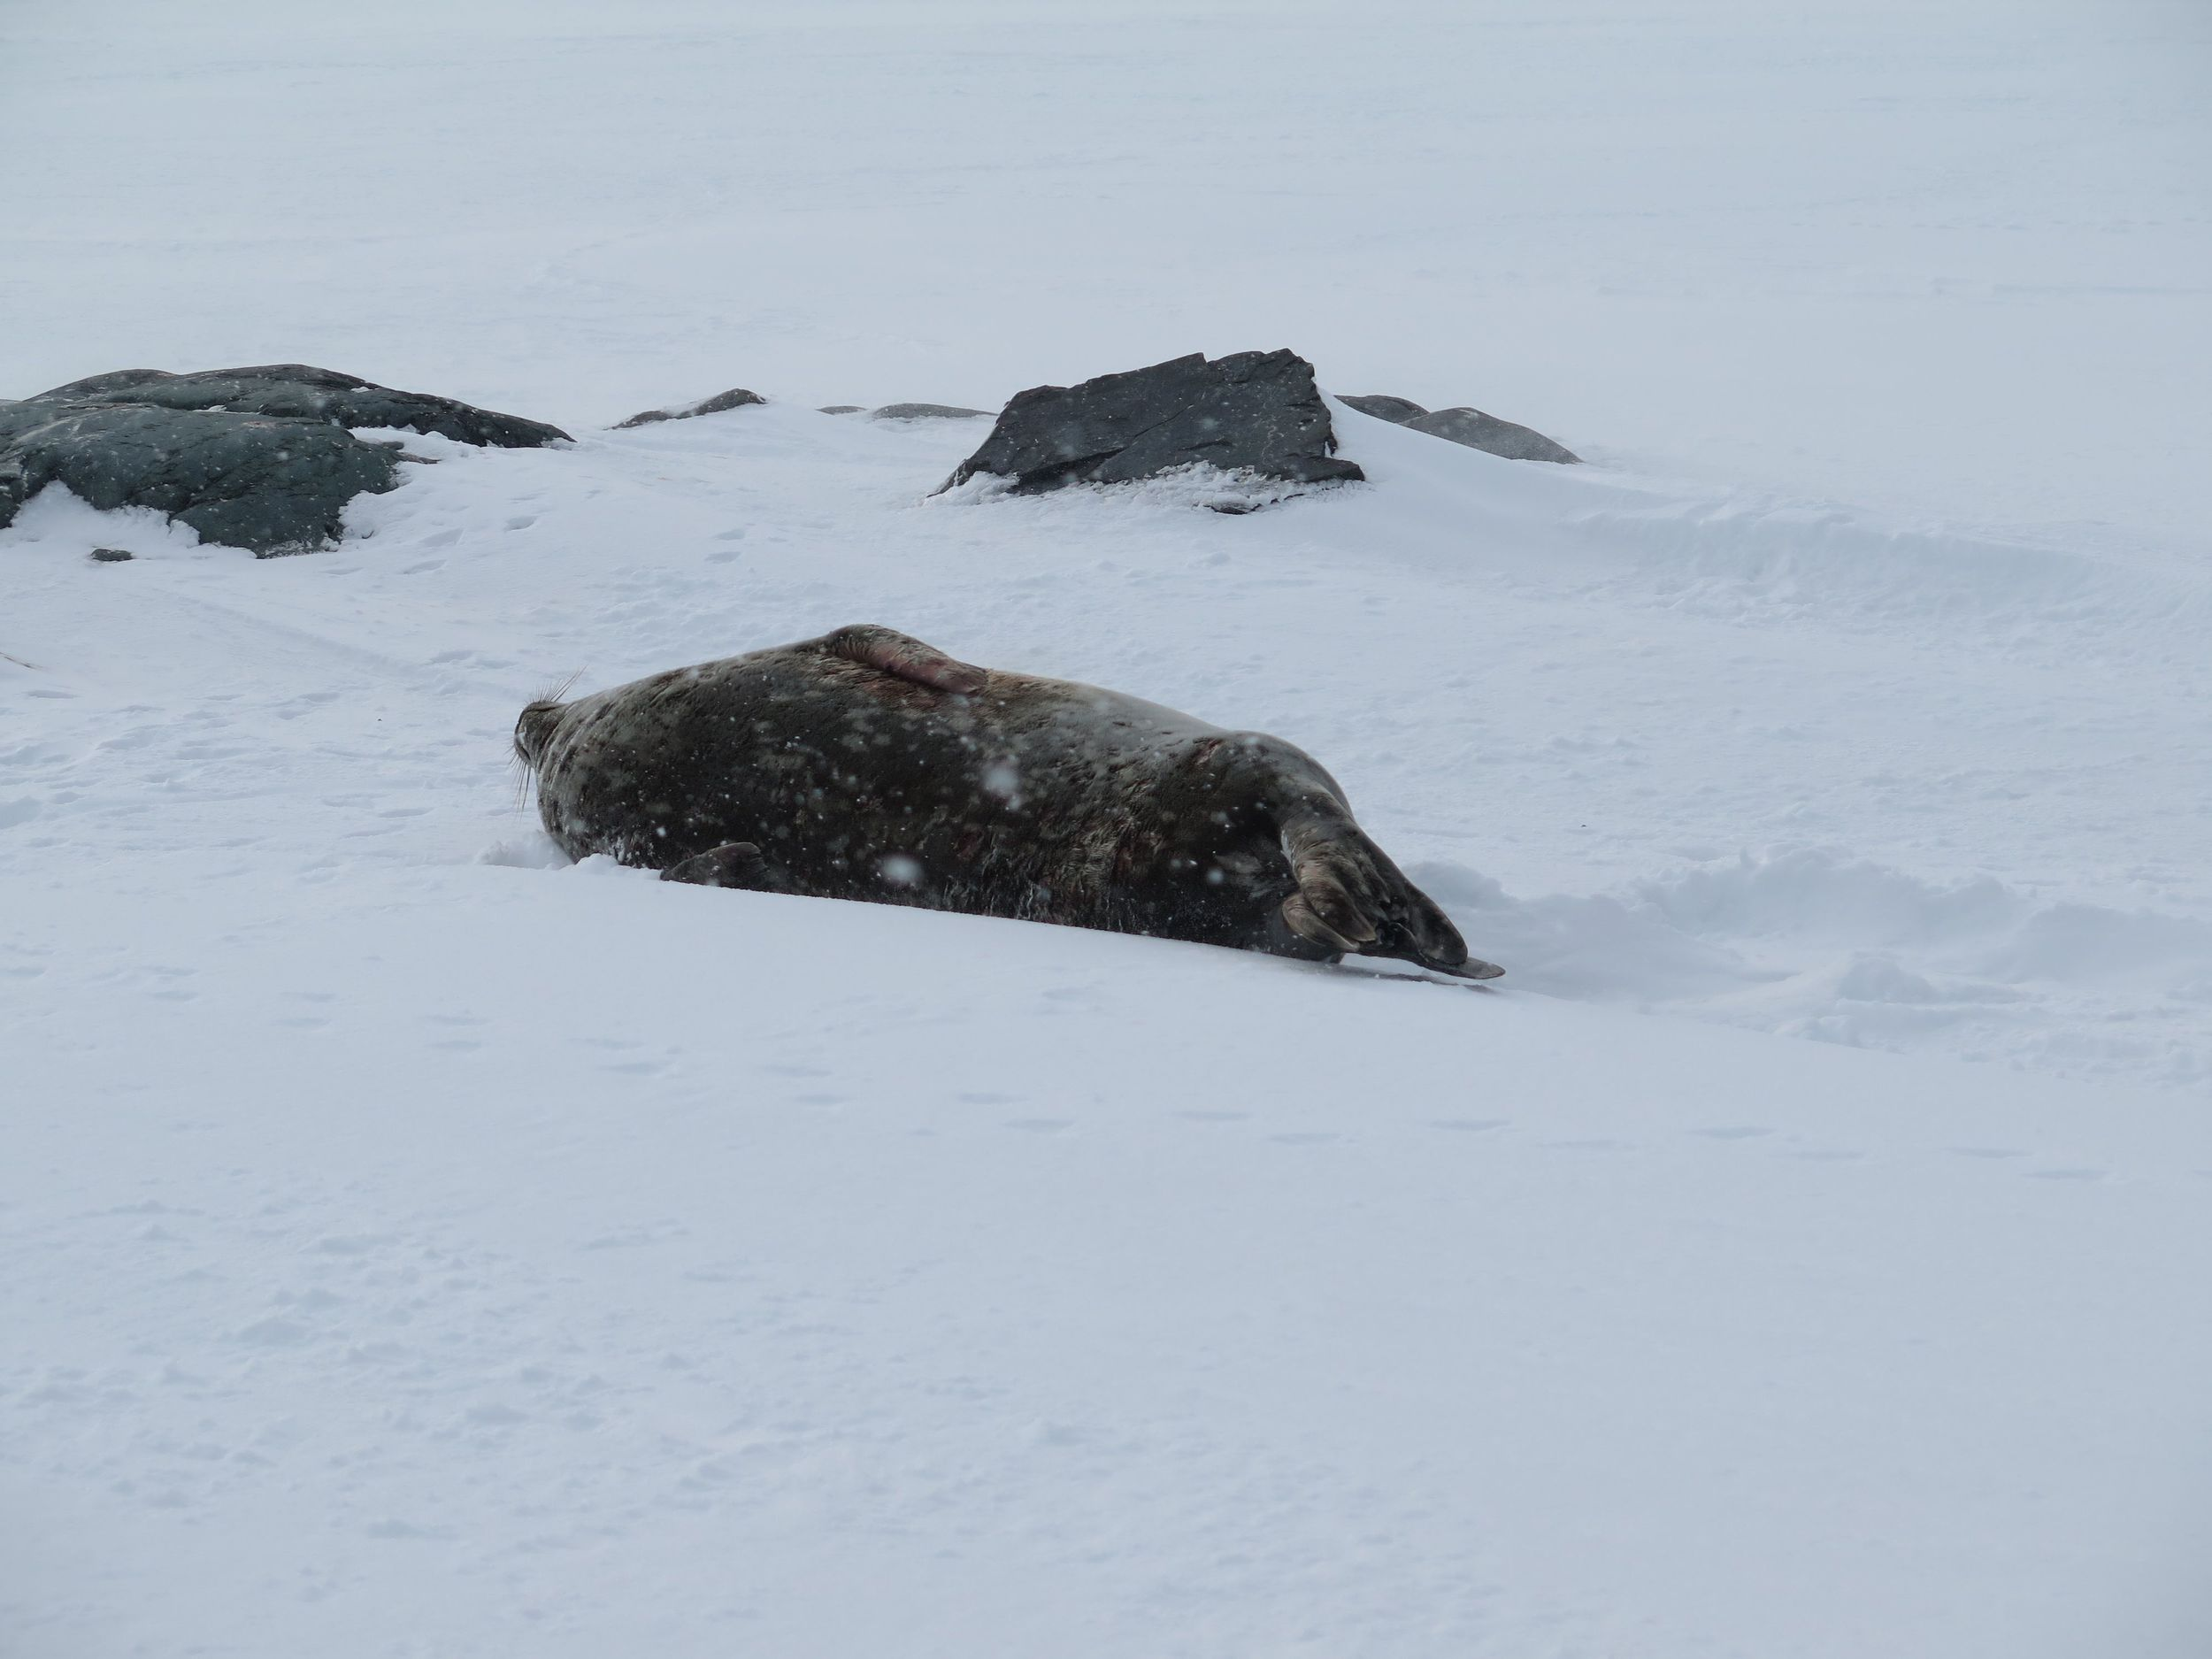 A lone Weddell Seal served as our Antarctic welcoming party. Weddells (named for British sealing captain James Weddell, who first saw them in the 1820s in the Antarctic waters now known as the Weddell Sea) have the most southerly distribution of any mammal. They're found only around Antarctica, and their range extends much farther south than the tip of the Antarctic peninsula, which we had reached.